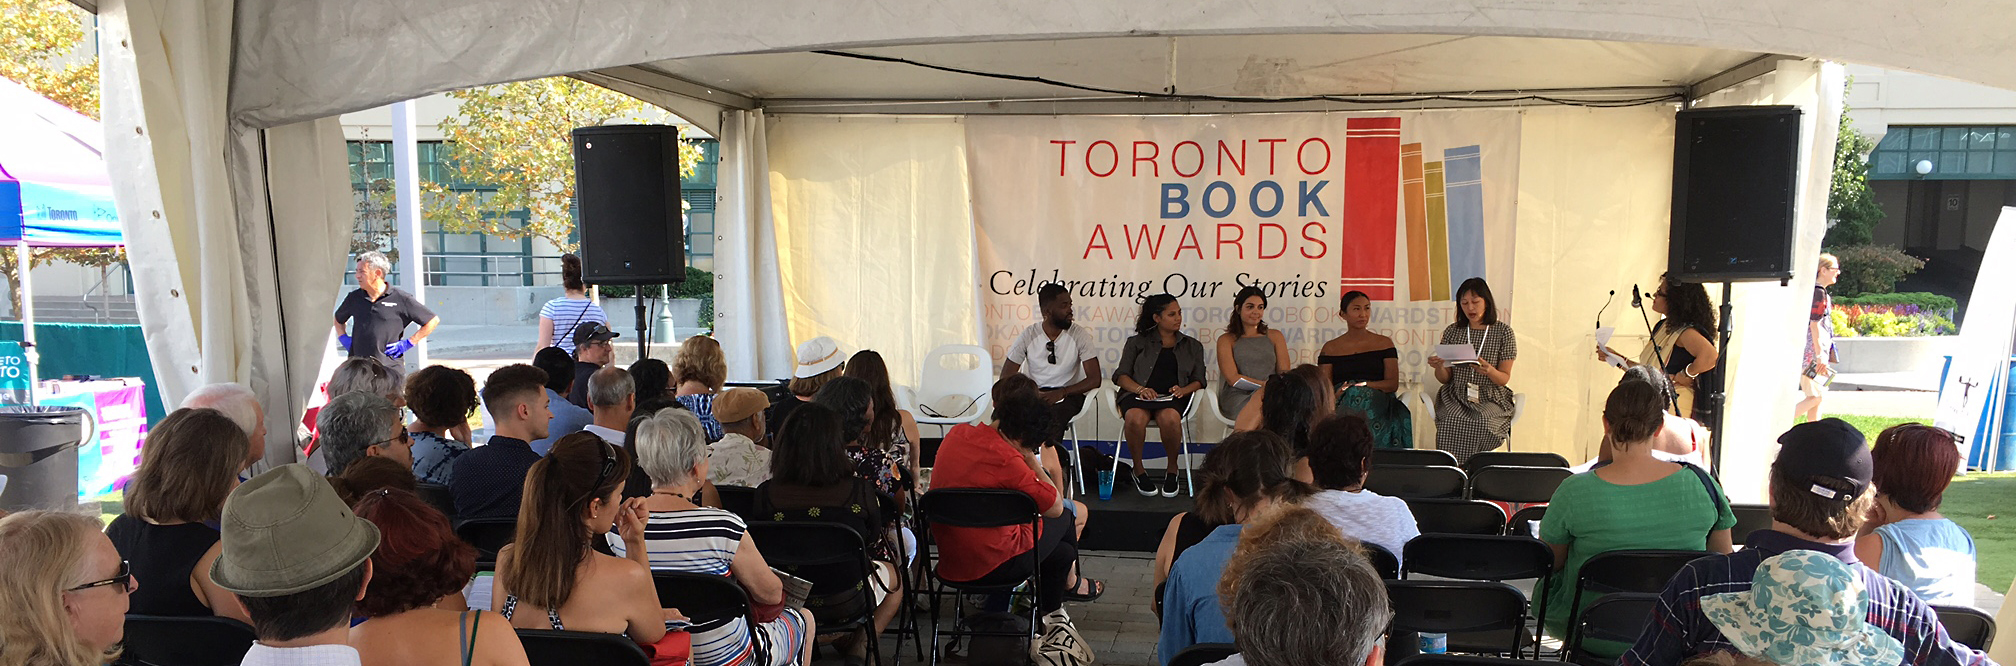 Finalists for the 2018 Toronto Book Award were Kerri Sakamoto (Floating City), David Chariandy, Brother), Phoebe Wang (The Unpublished City), Lee Maracle (My Conversations with Canadians) and Carrianne Leung (That Time I Loved You)